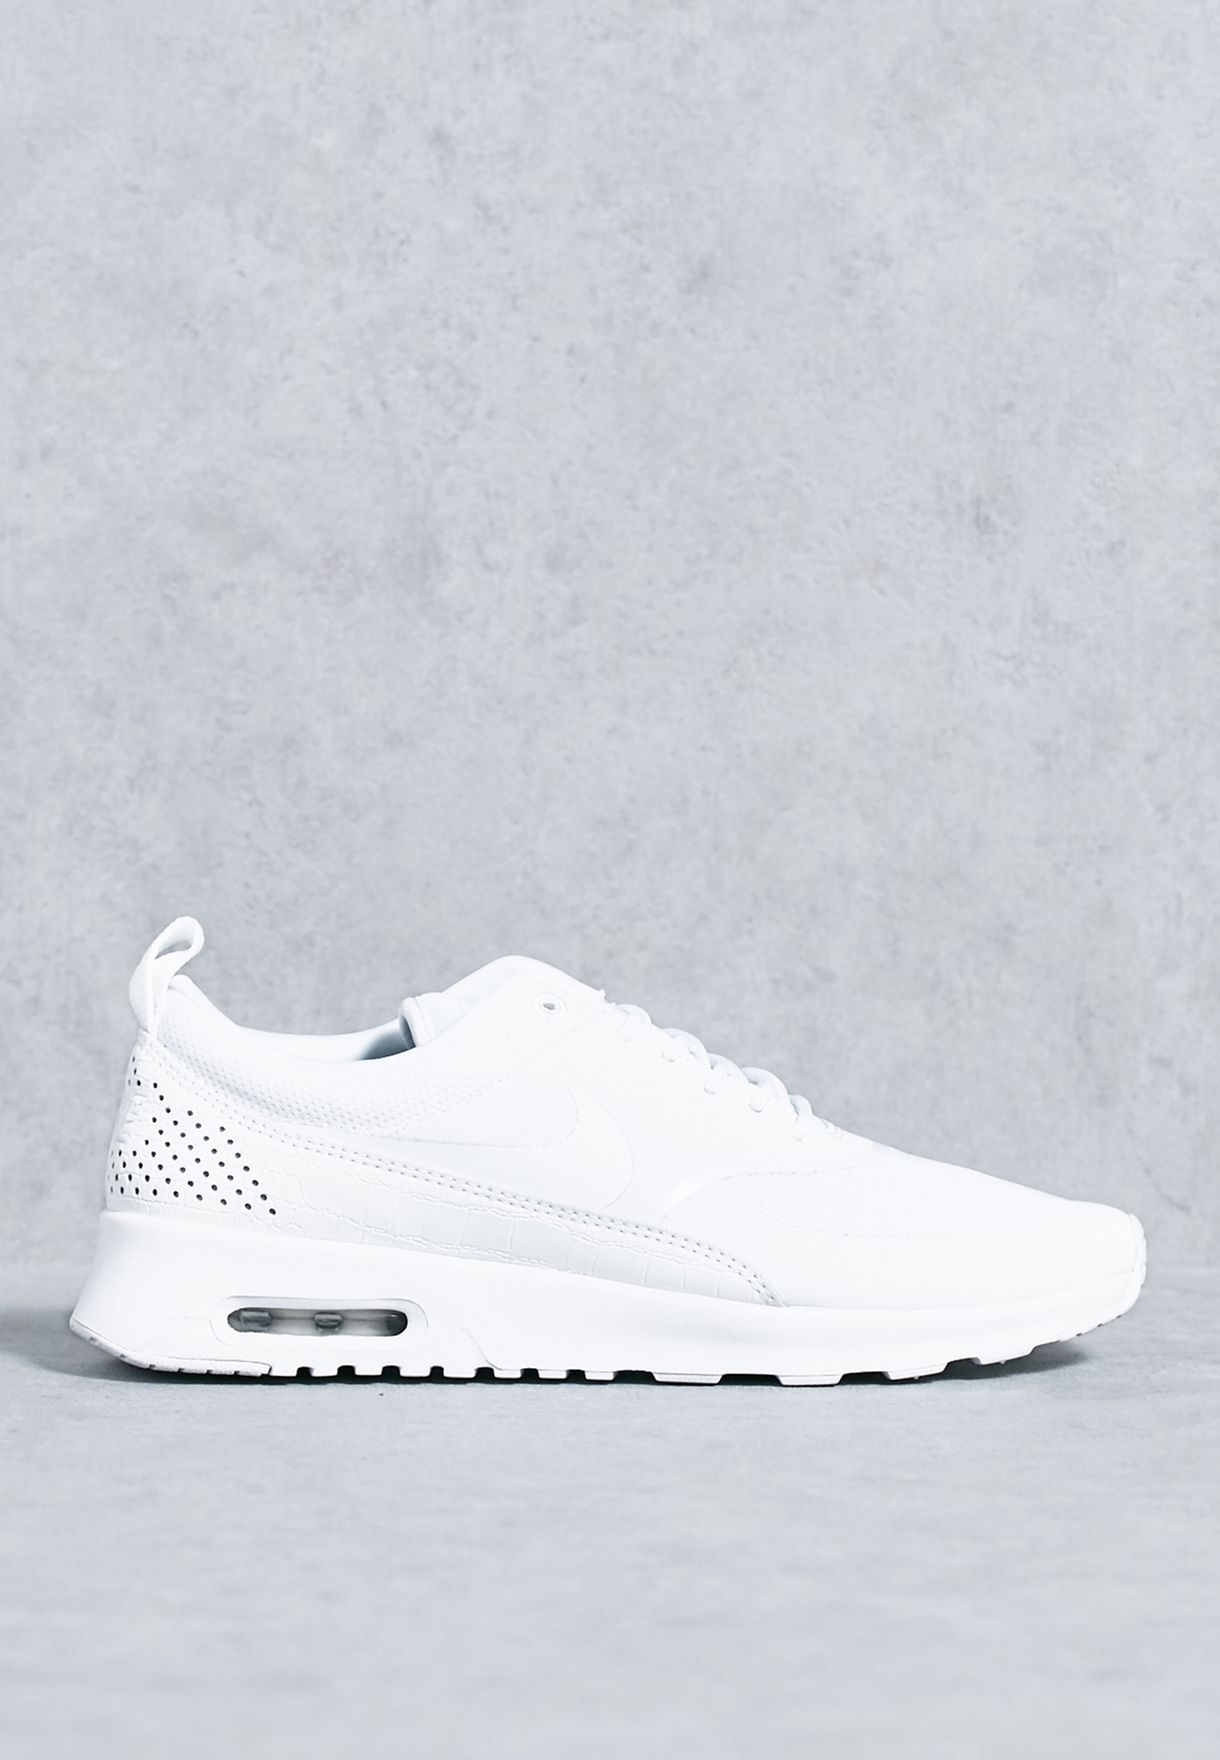 new arrival 7a314 afd21 Shop Nike white Air Max Thea 599409-104 for Women in UAE - N